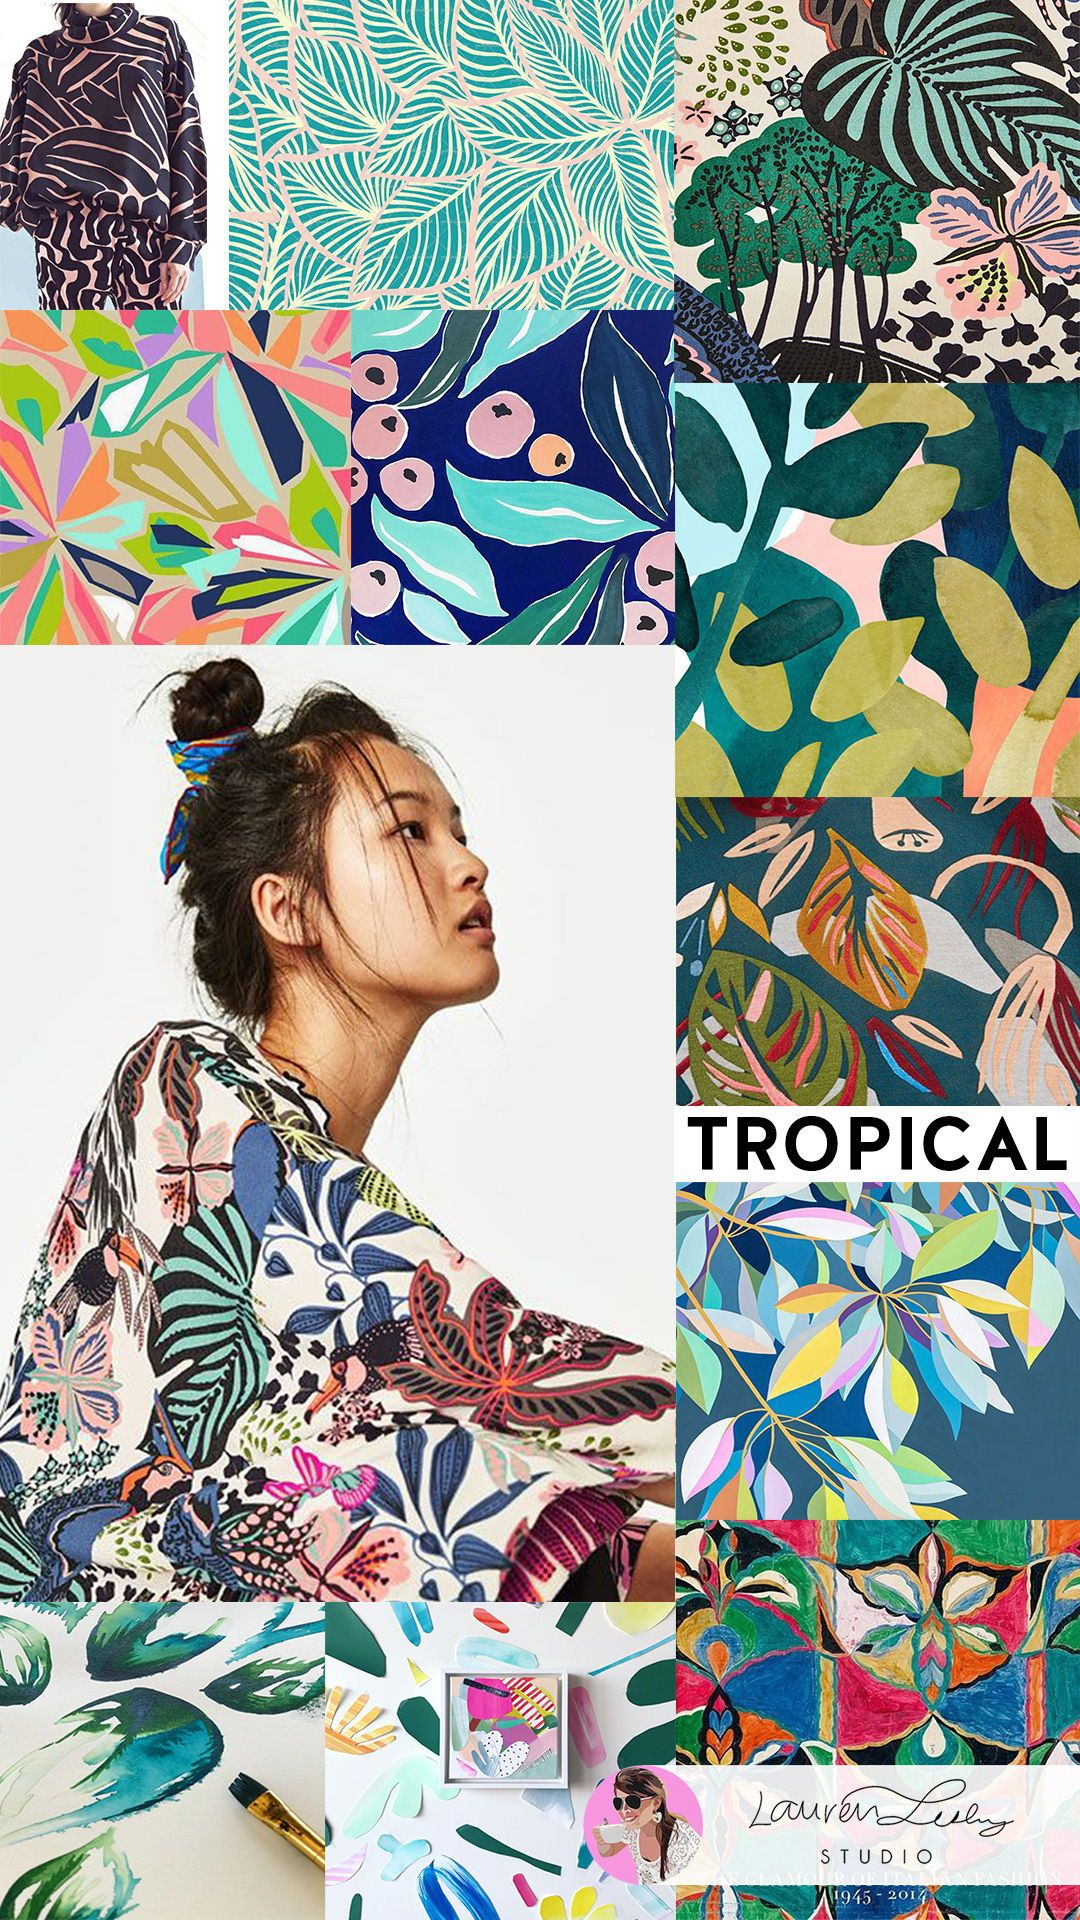 Tropical Trend Report SS19 | Modern Tropical Illustration Design | Tropical Print | Tropical Decor | Tropical Fashion | Tropical Wallpaper | Tropical Outfit | Tropical Aesthetic | Tropical Art | Pattern Design | Surface Design #laurenlesleystudio #tropicalpattern